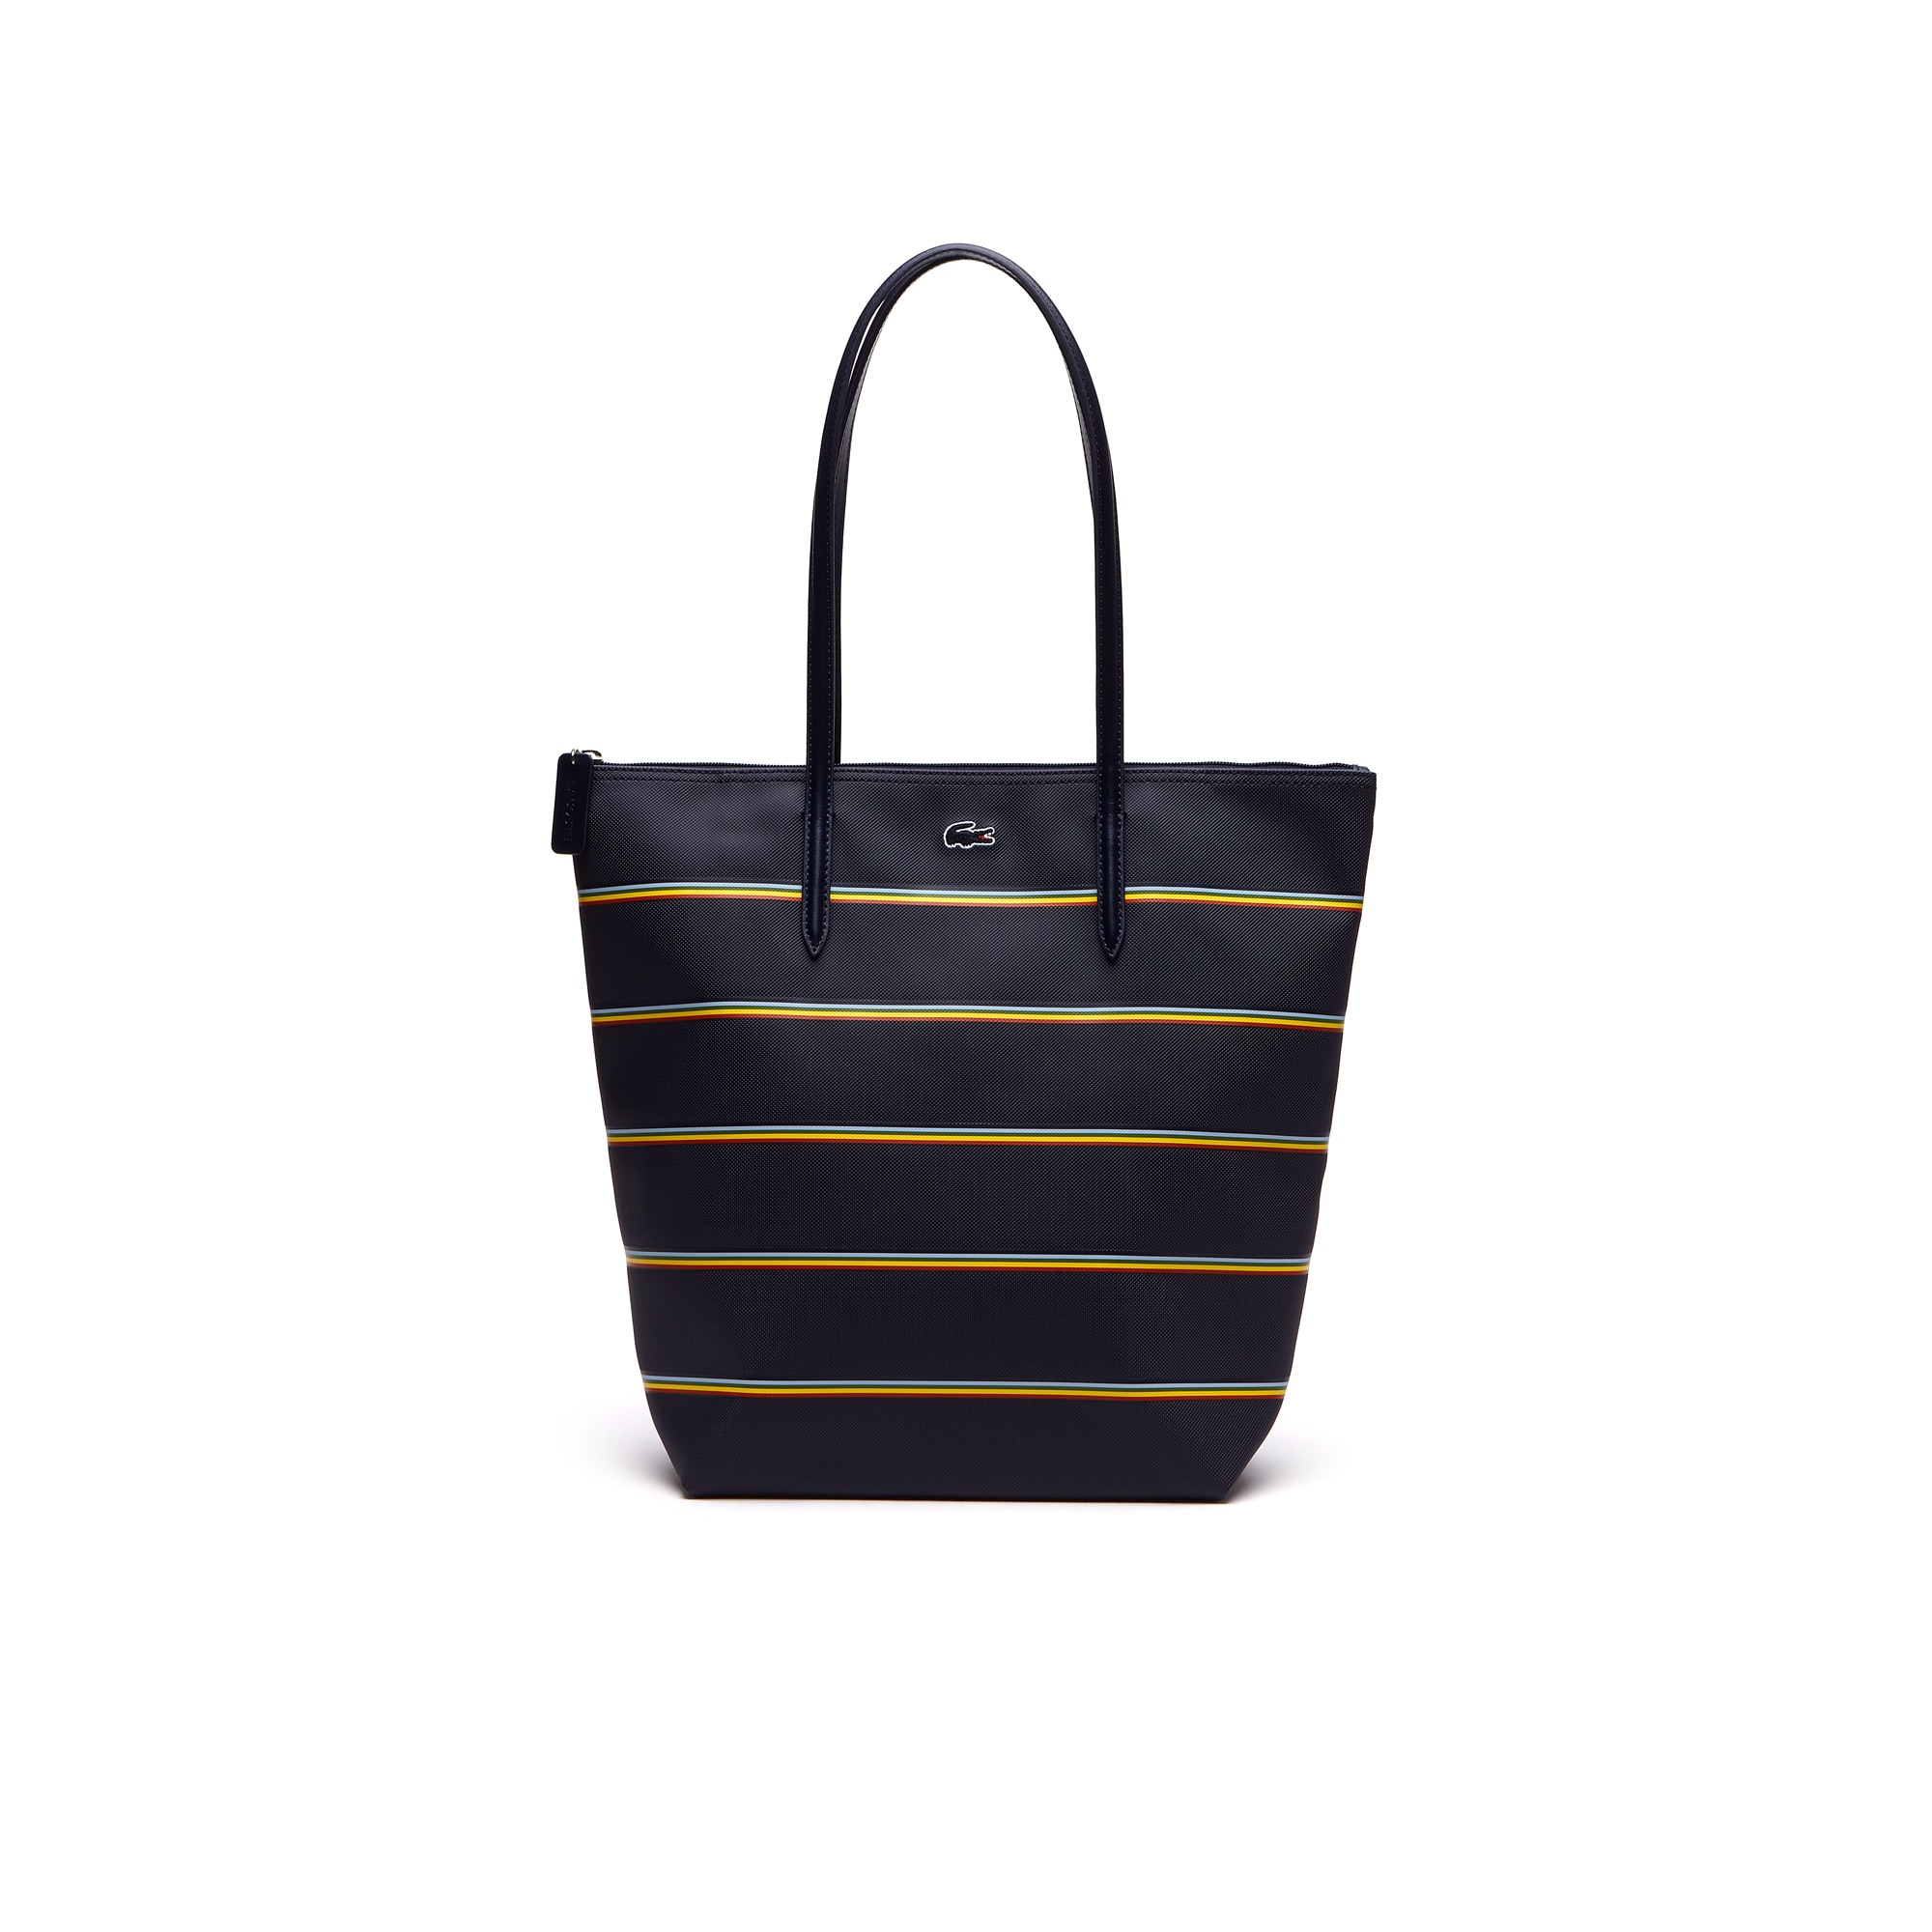 Shopping bag verticale con zip L.12.12 Concept a righe arcobaleno